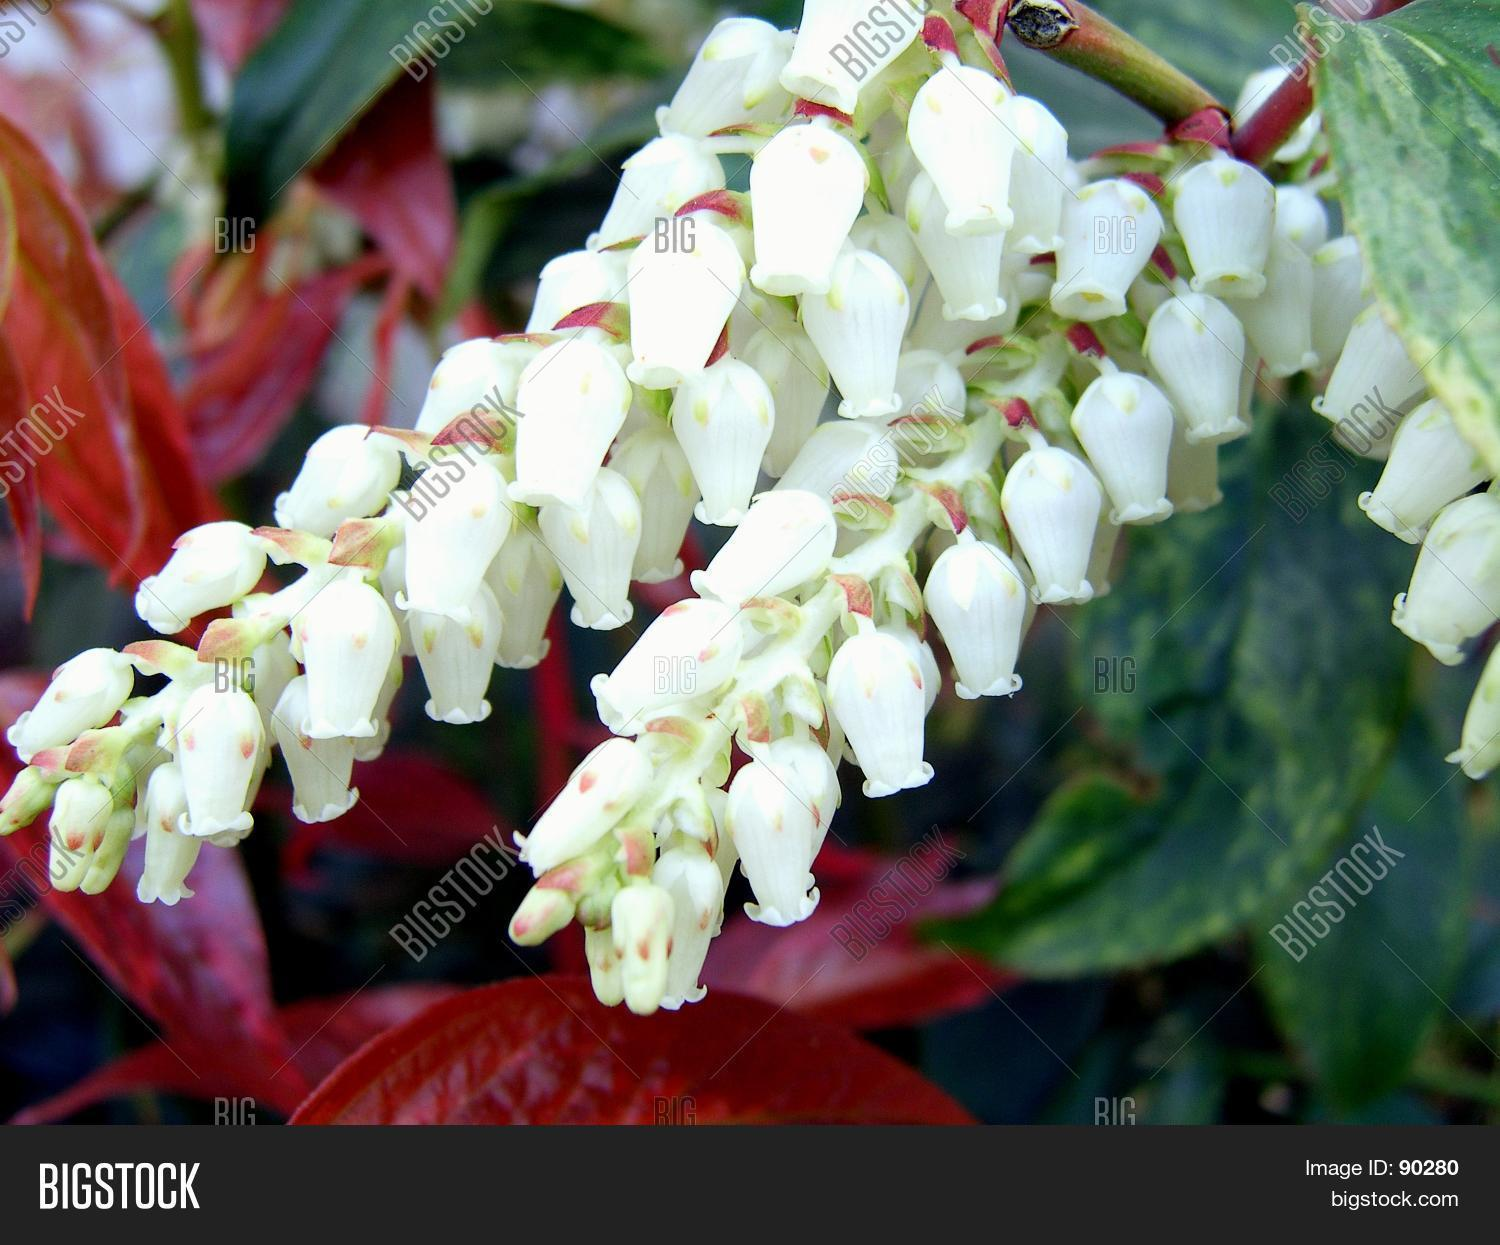 White bell flowers image photo free trial bigstock white bell flowers mightylinksfo